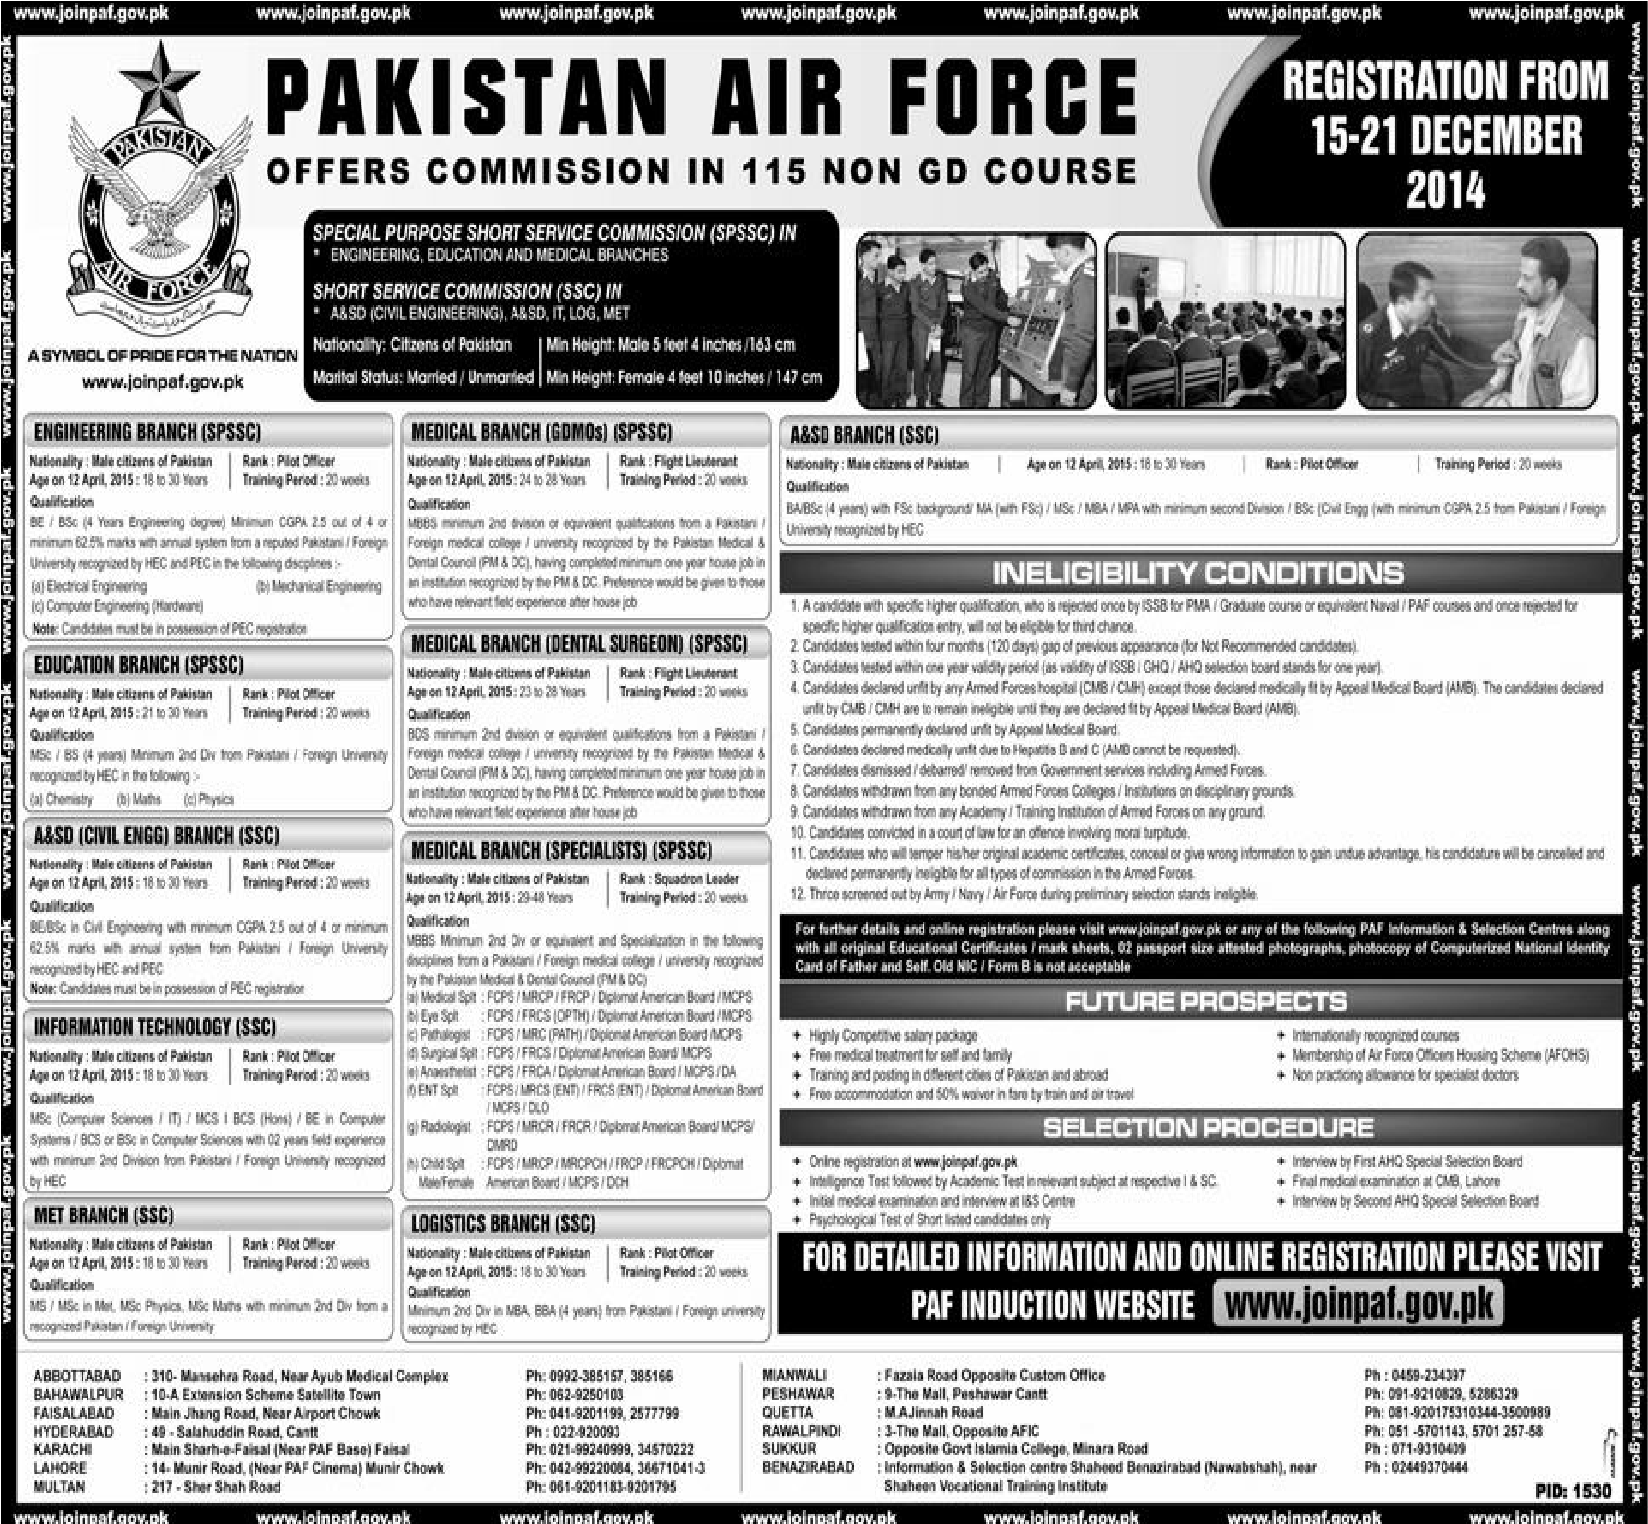 Pakistan Air Force PAF Jobs 2014 Through Commission 115 Non GD Course